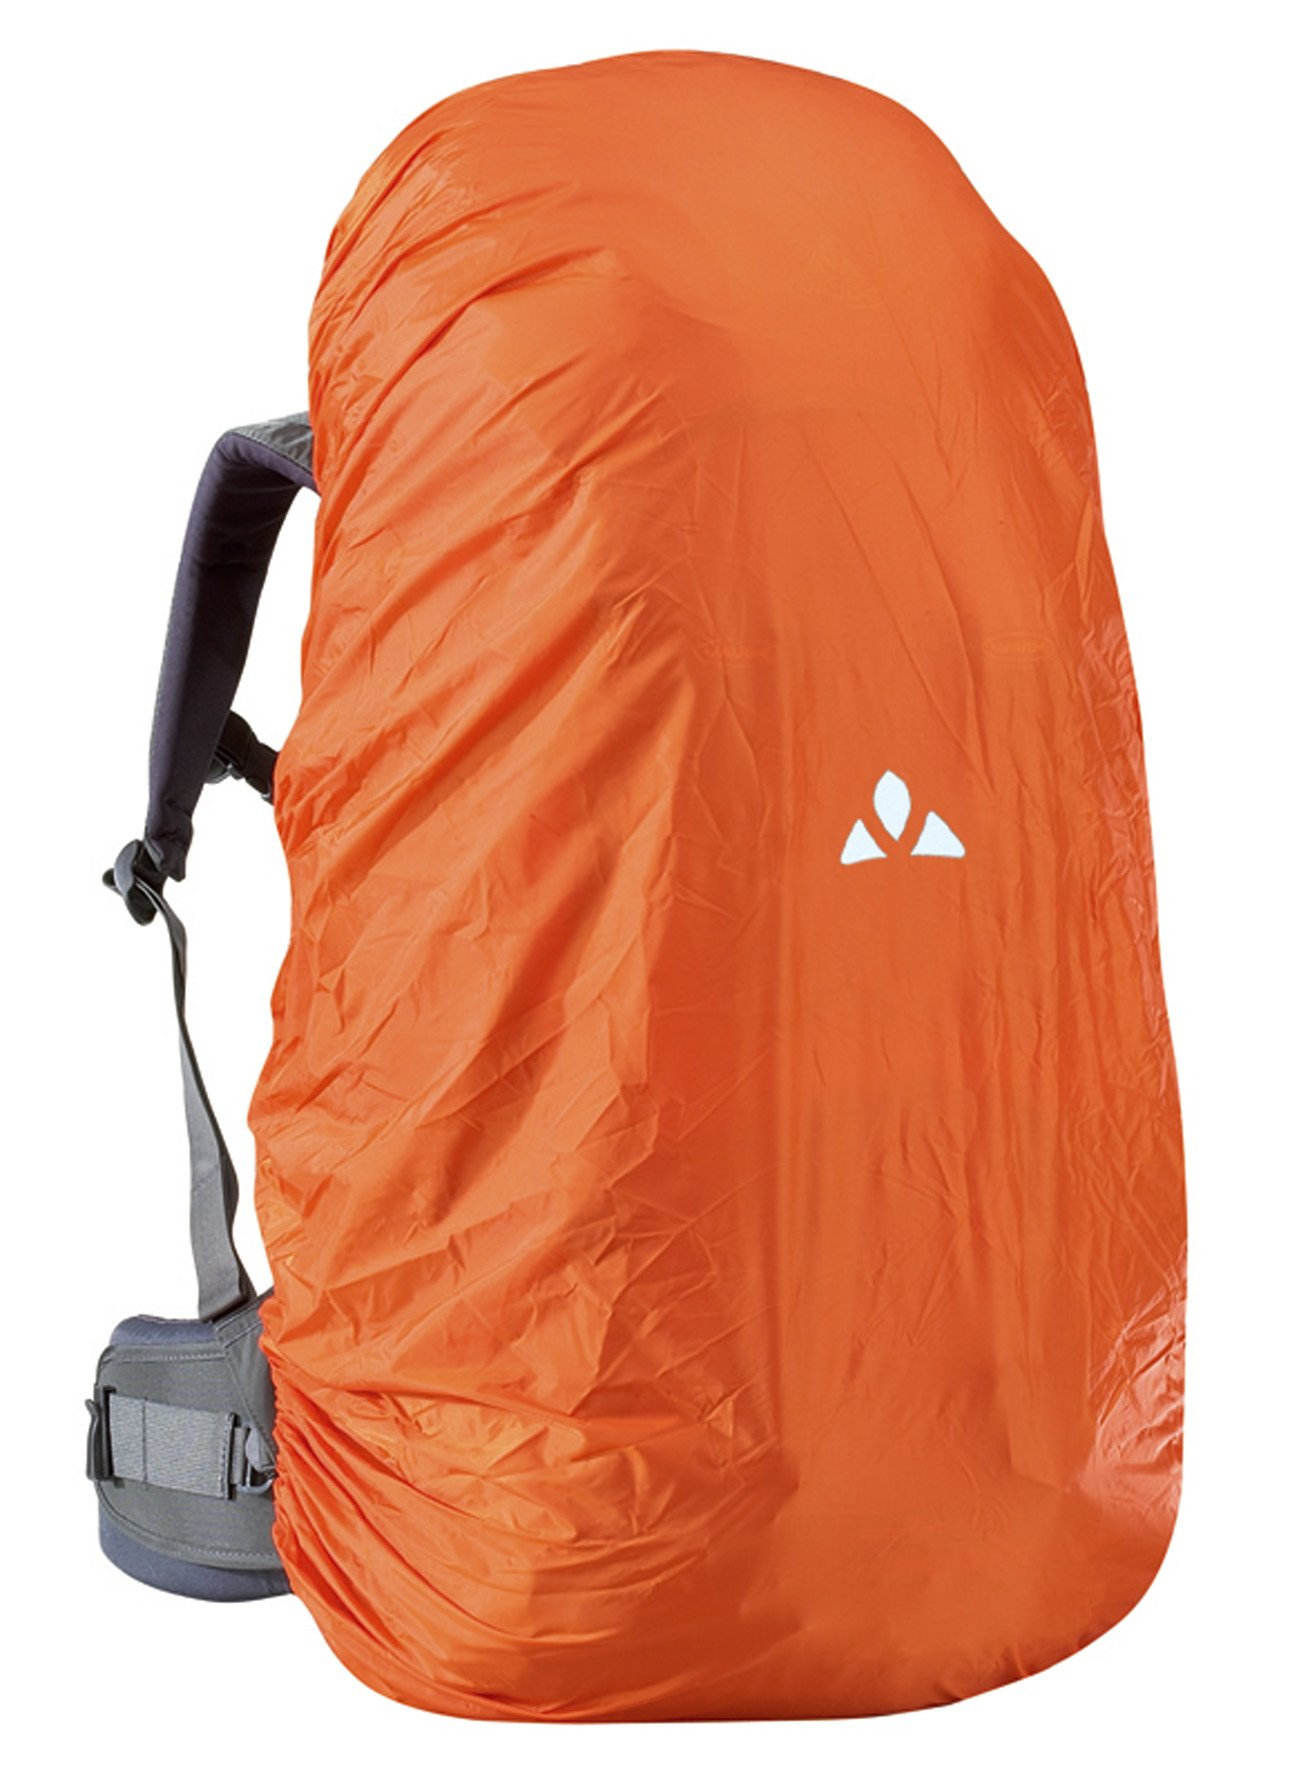 719or7TS8BL - VAUDE Raincover for Backpacks 6-15 l orange backpack accessories